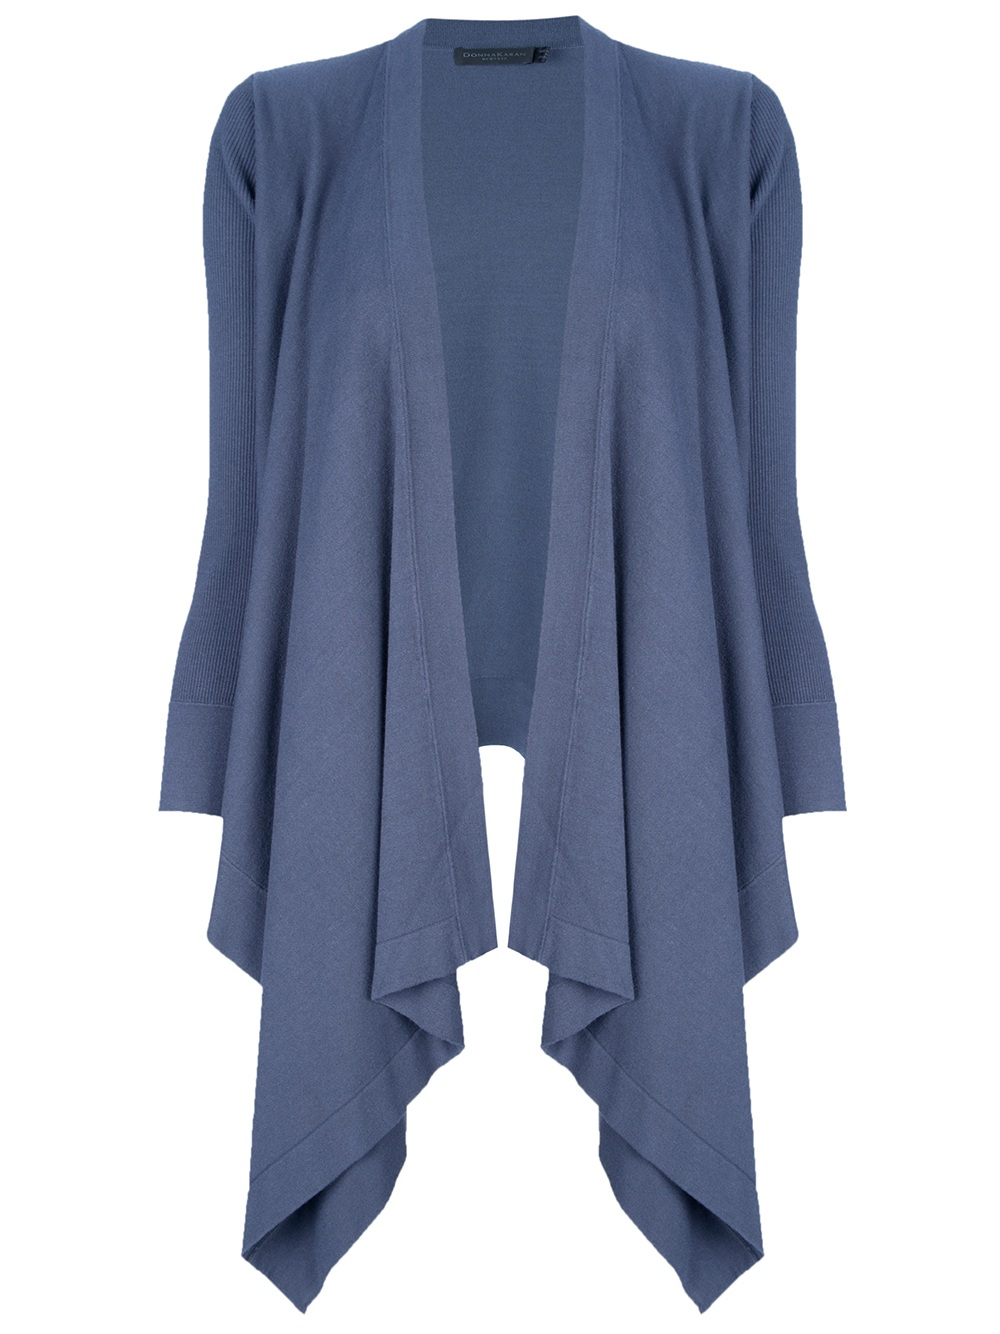 Donna karan Curtained Waterfall Cardigan in Blue | Lyst